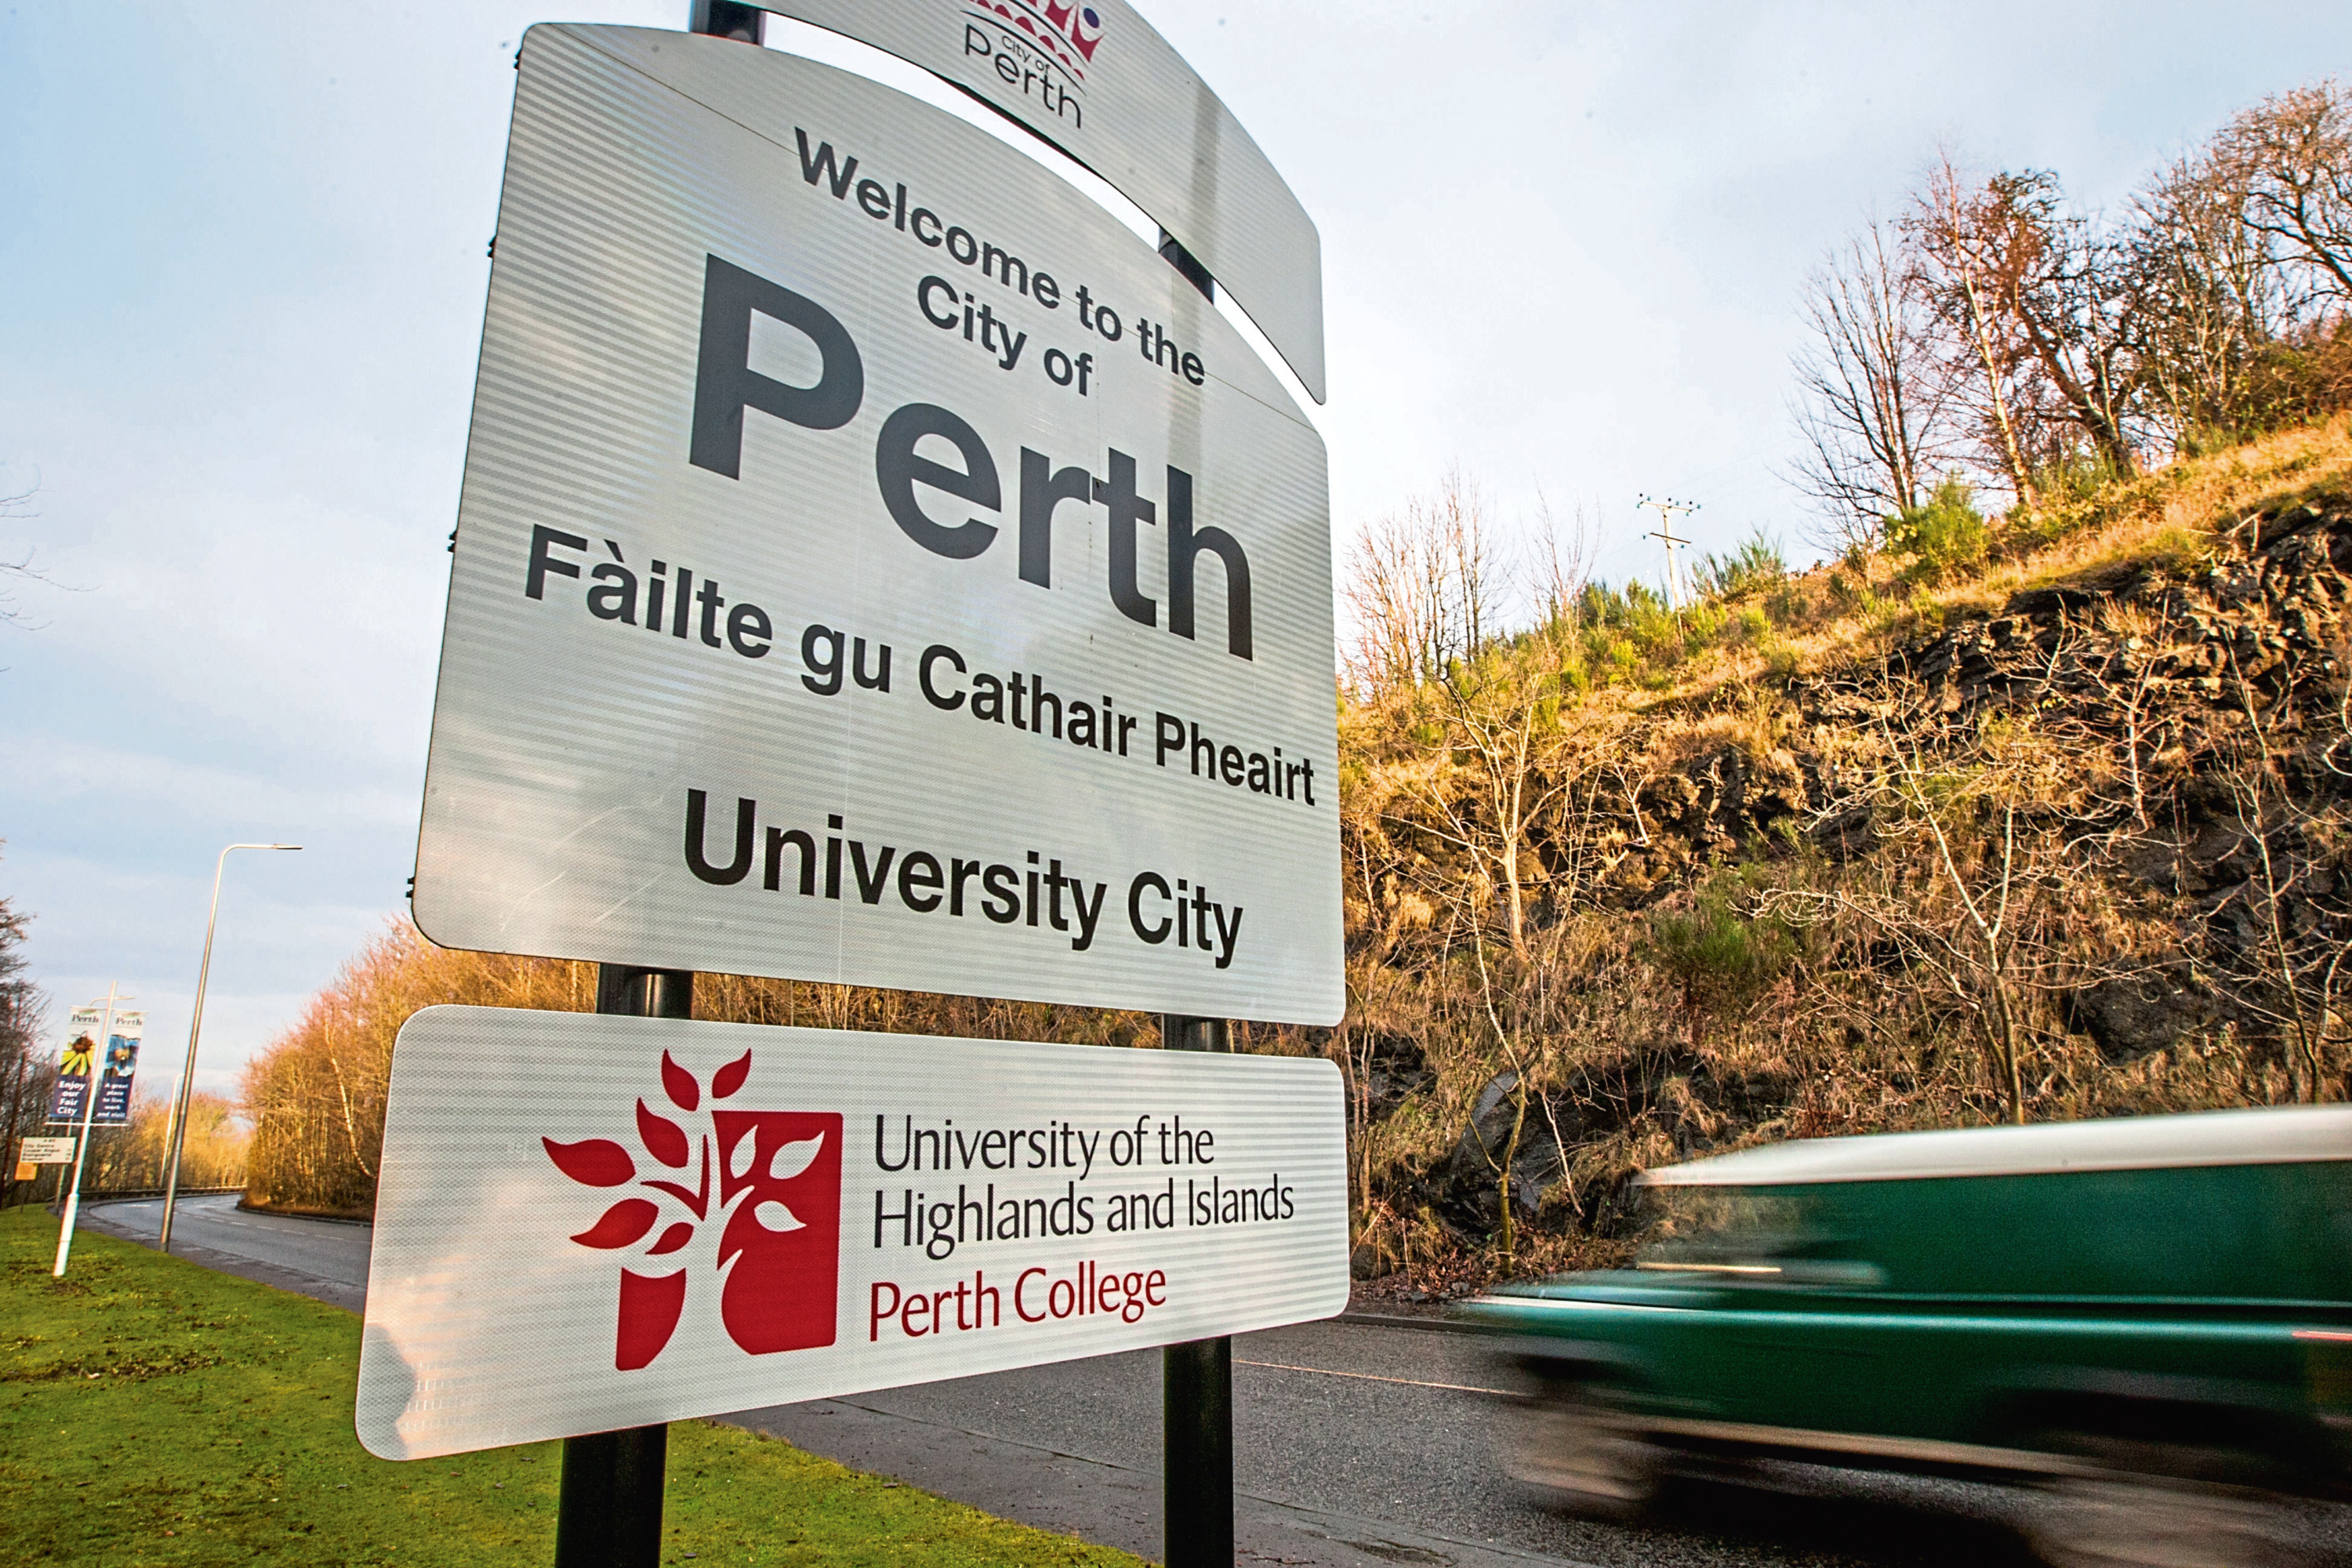 Almost two million people visit Perthshire every year.